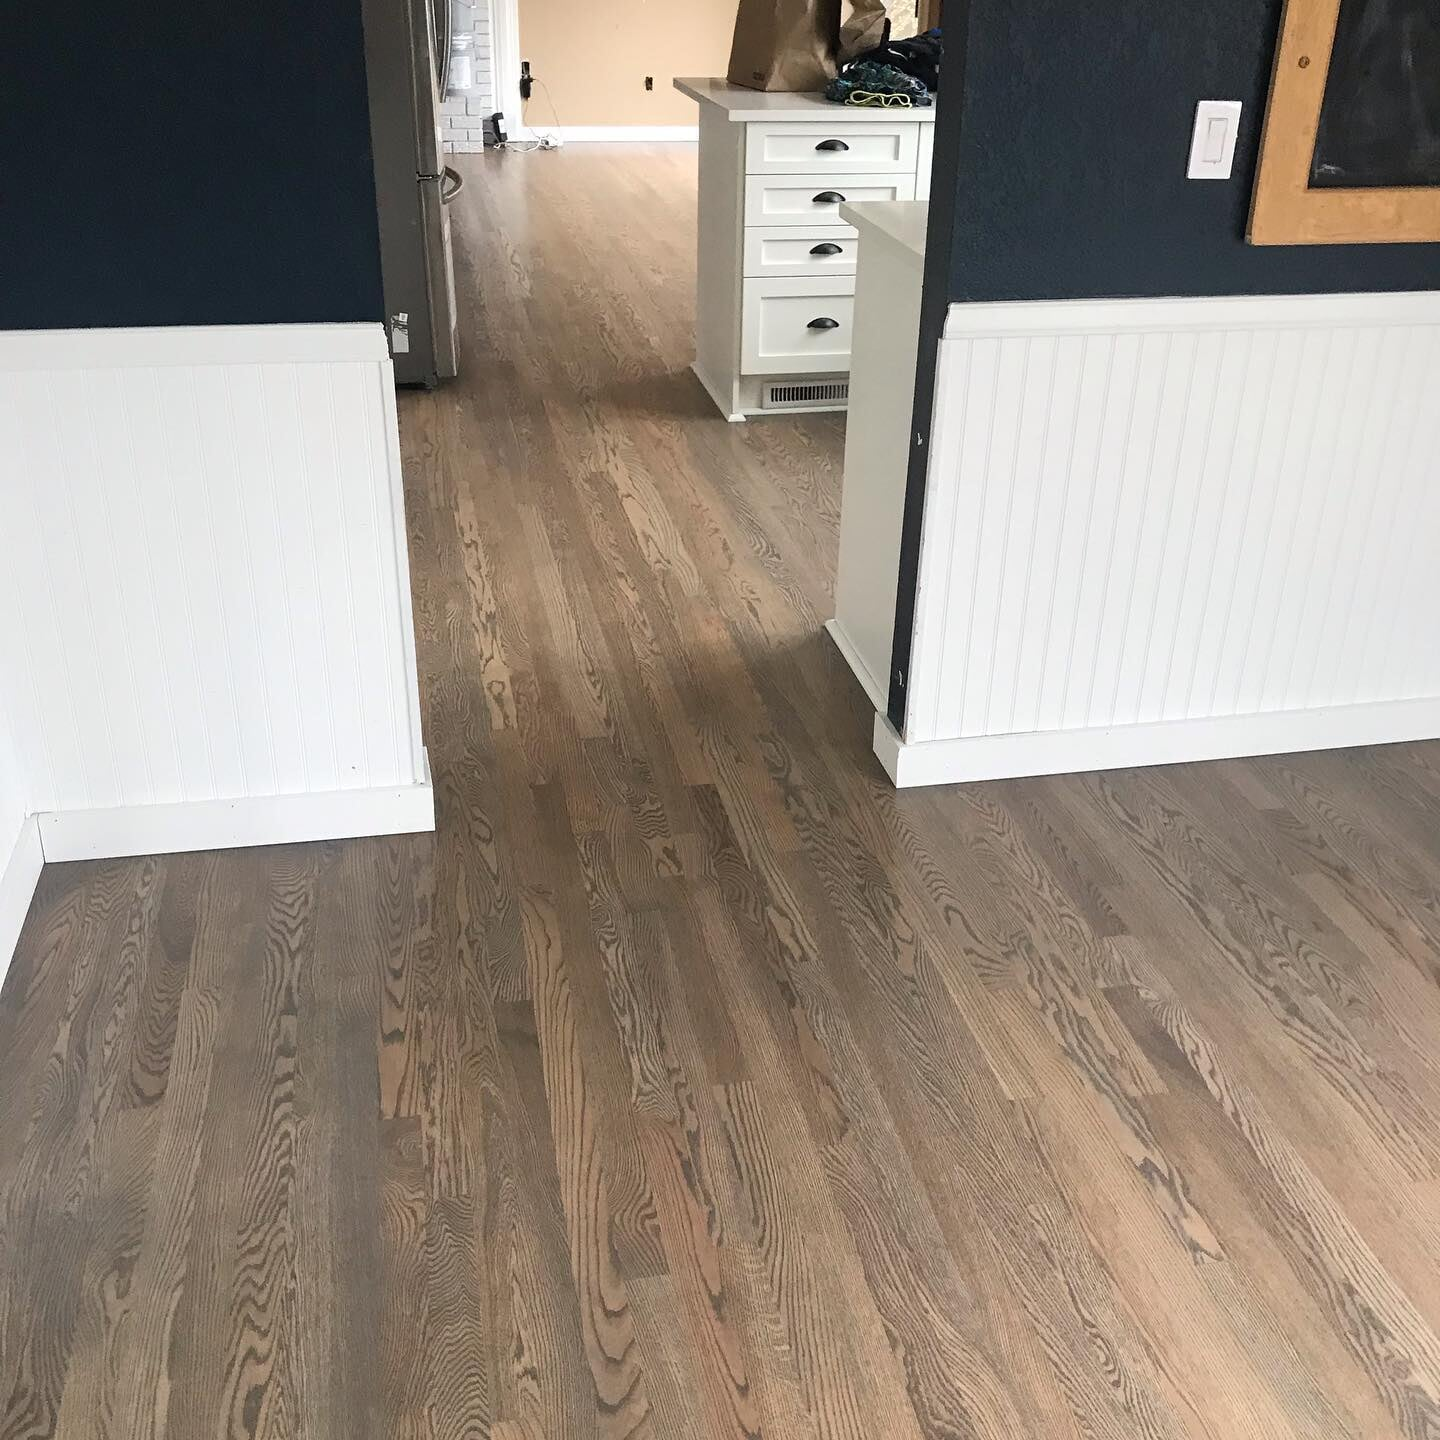 Luxury vinyl plank flooring from LeBlanc Floors & Interiors in Lake City, WA